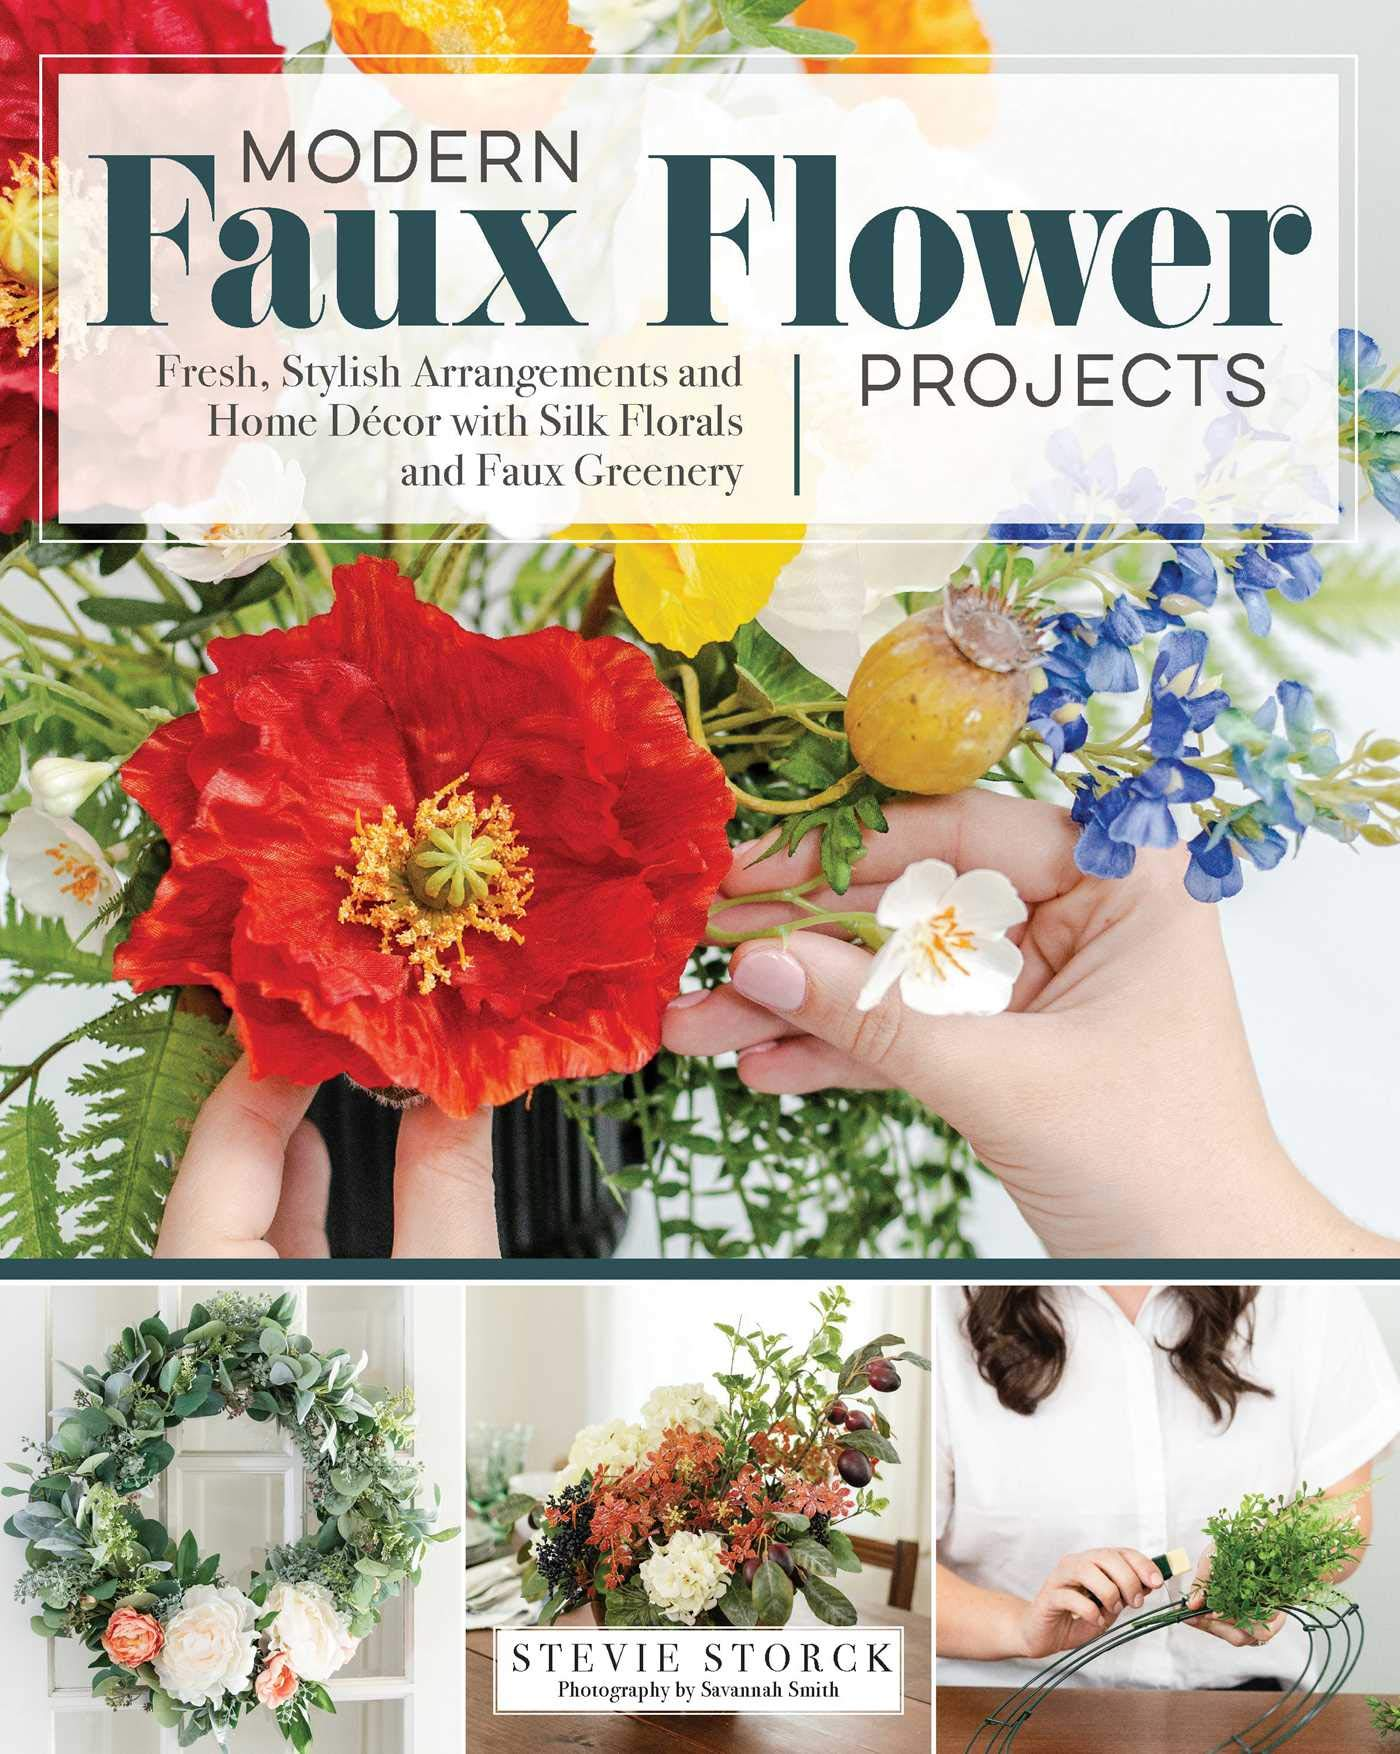 Modern Faux Flower Projects Fresh Stylish Arrangements And Home Decor With Silk Florals And Faux Greenery Fox Chapel Publishing 12 Step By Step Arrangements Wreaths Garlands Centerpieces More Stevie Storck 9781497100473 Amazon Com Books